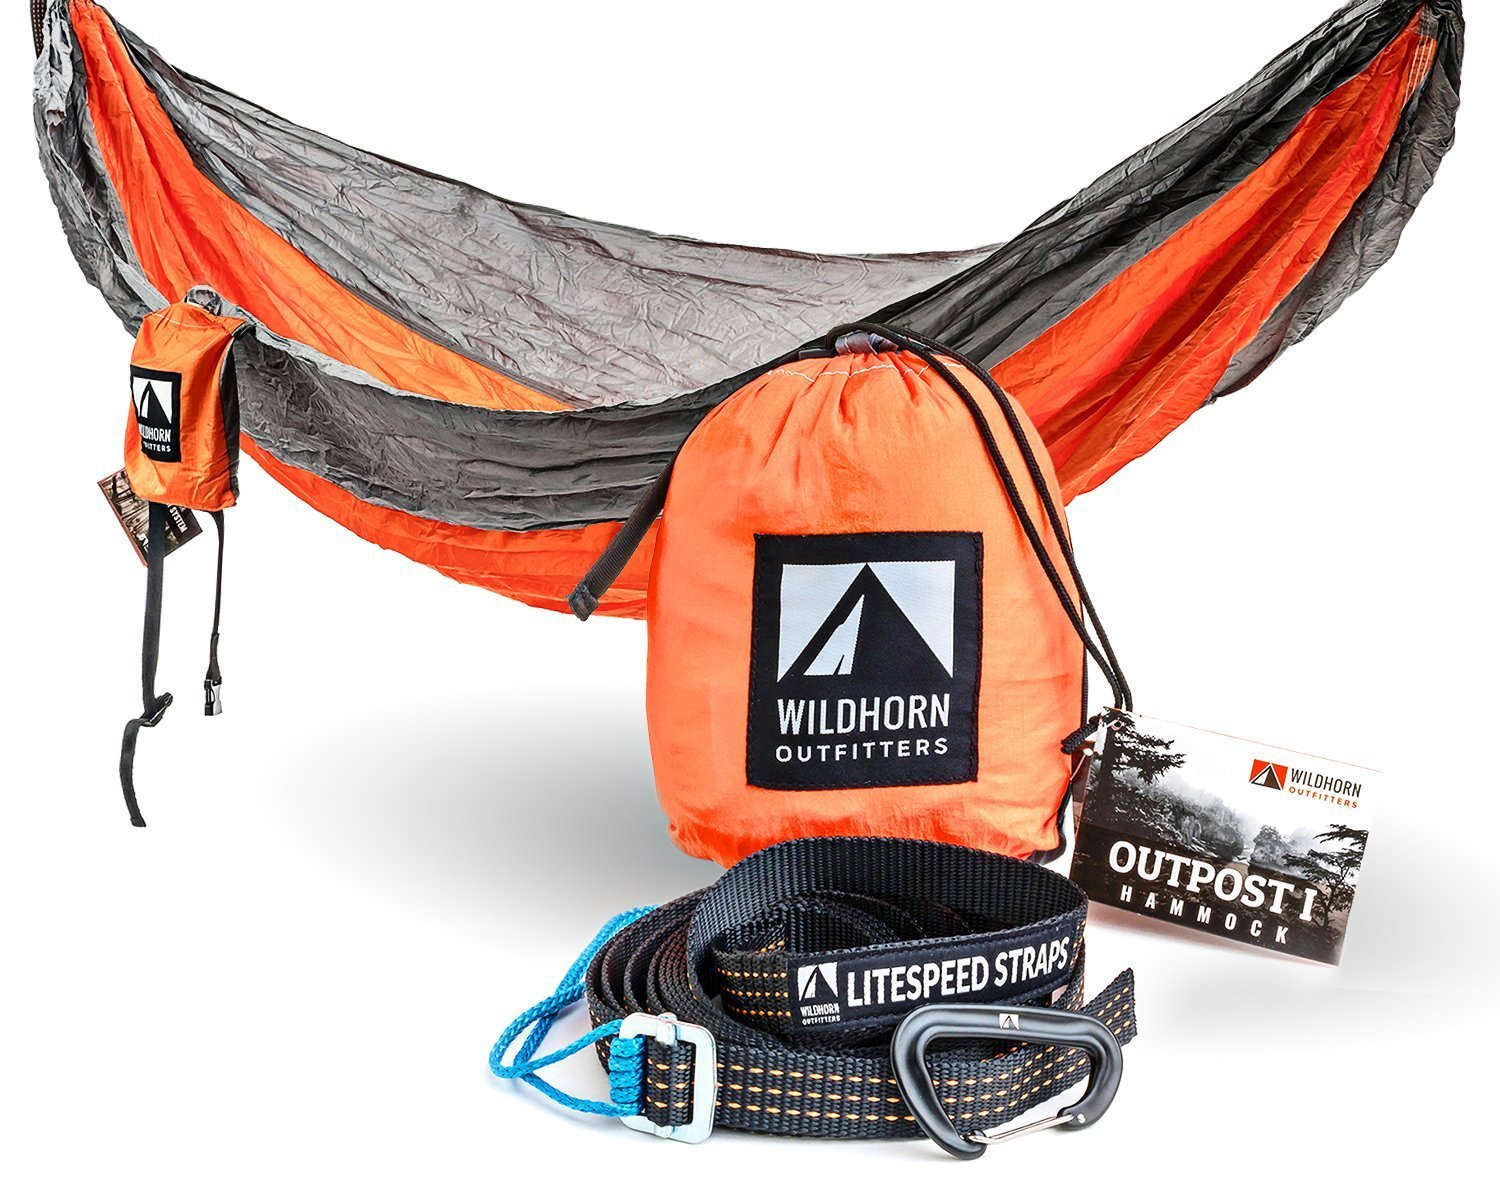 Wildhorn Outpost Portable Camping Hammock U2013 Single Or Double U2013 11 Feet Long  U2013 400 Lb Weight Capacity U2013 Various Colors Available